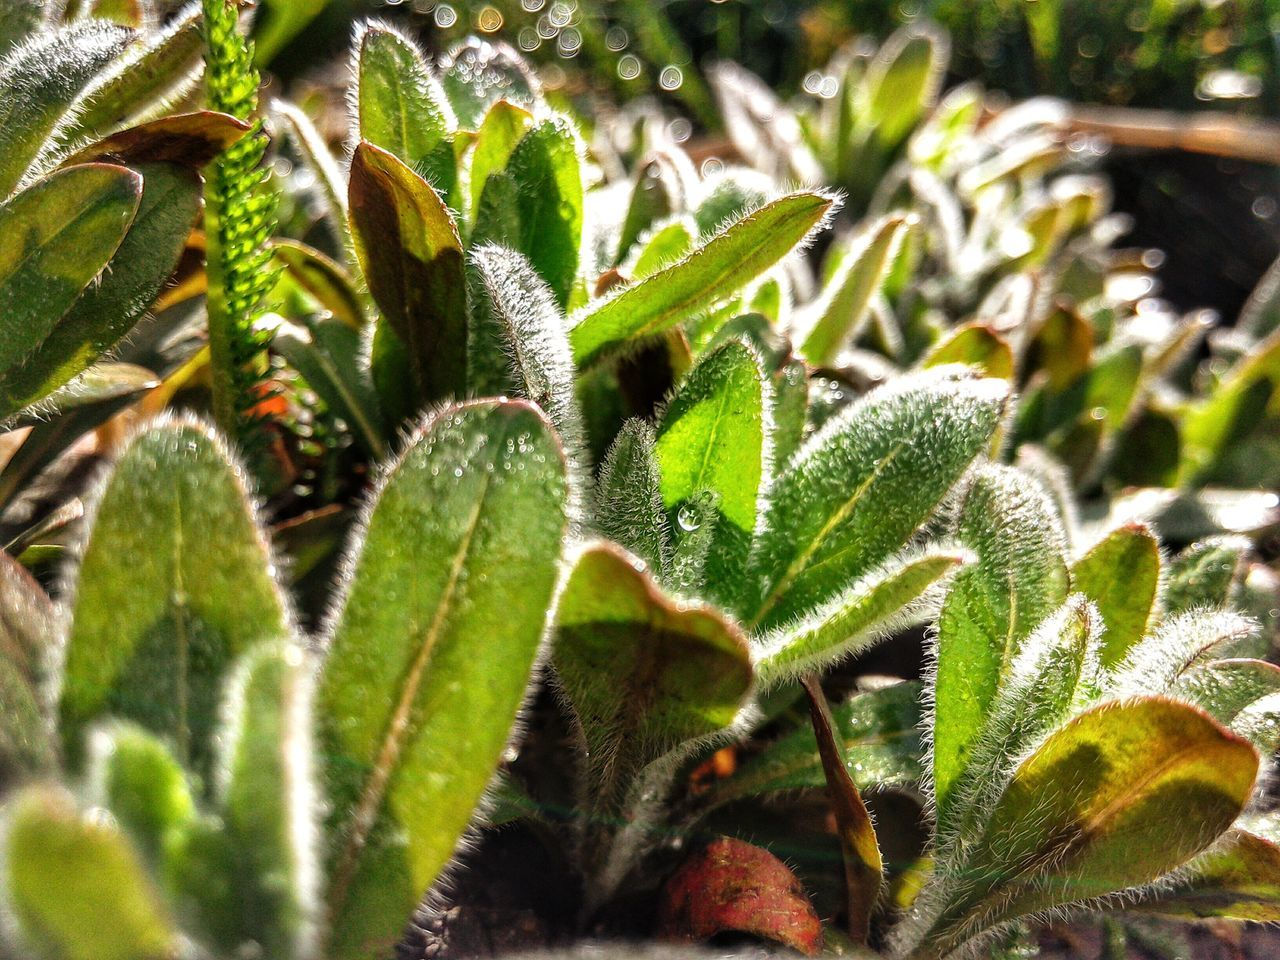 Perennial Growing Leaves Macro Morning Sun Dew Drops Dew Bokeh Garden Garden Photography Hairy Leaves Showcase April